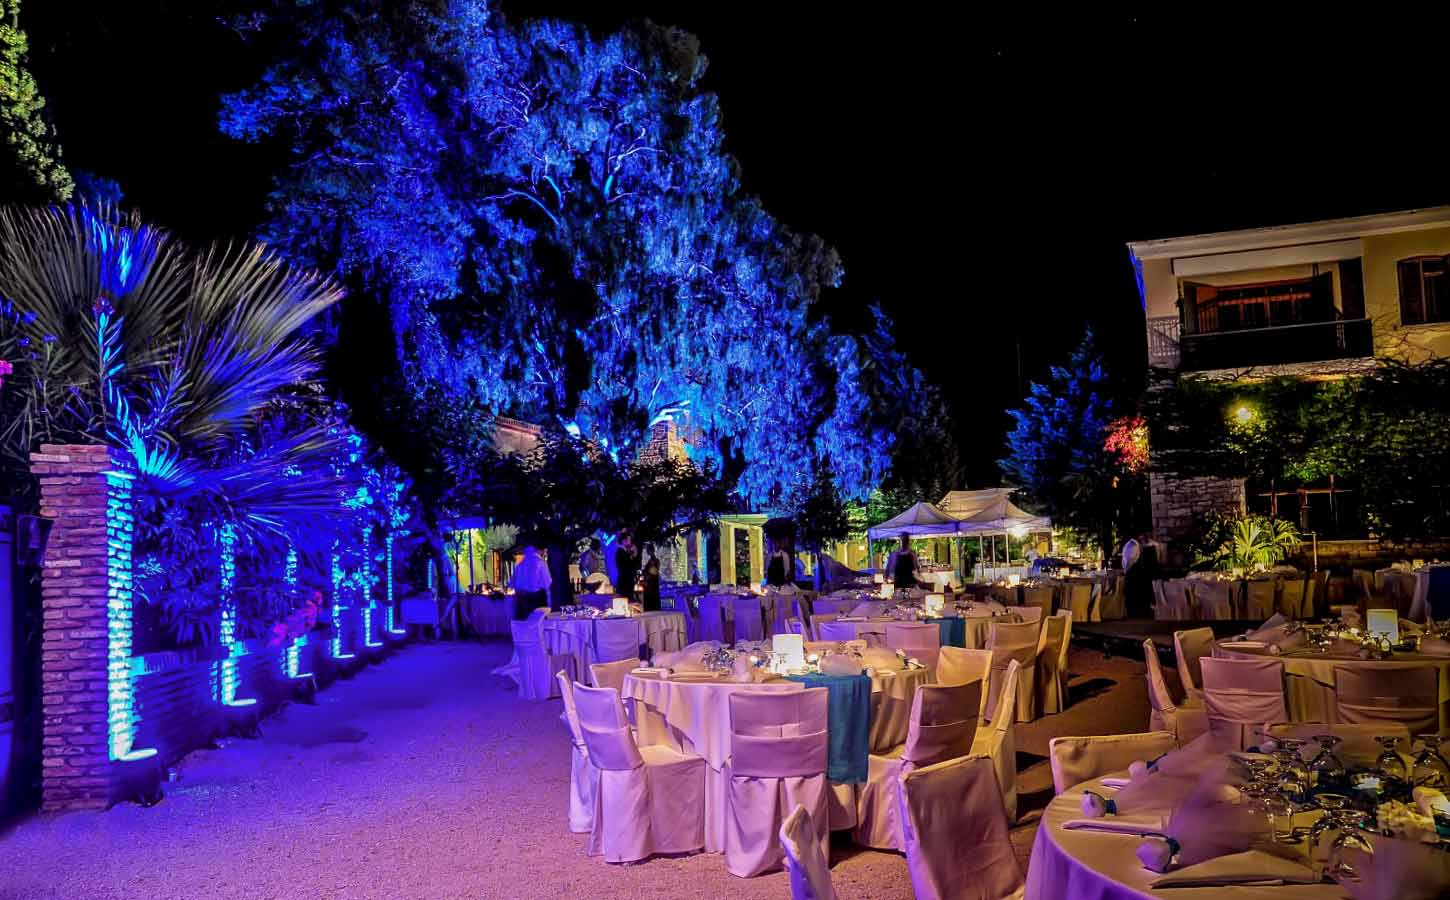 blue-lihting-in-achaia-clauss-winery-in-greece--diamond-events-luxury-event-planning-services